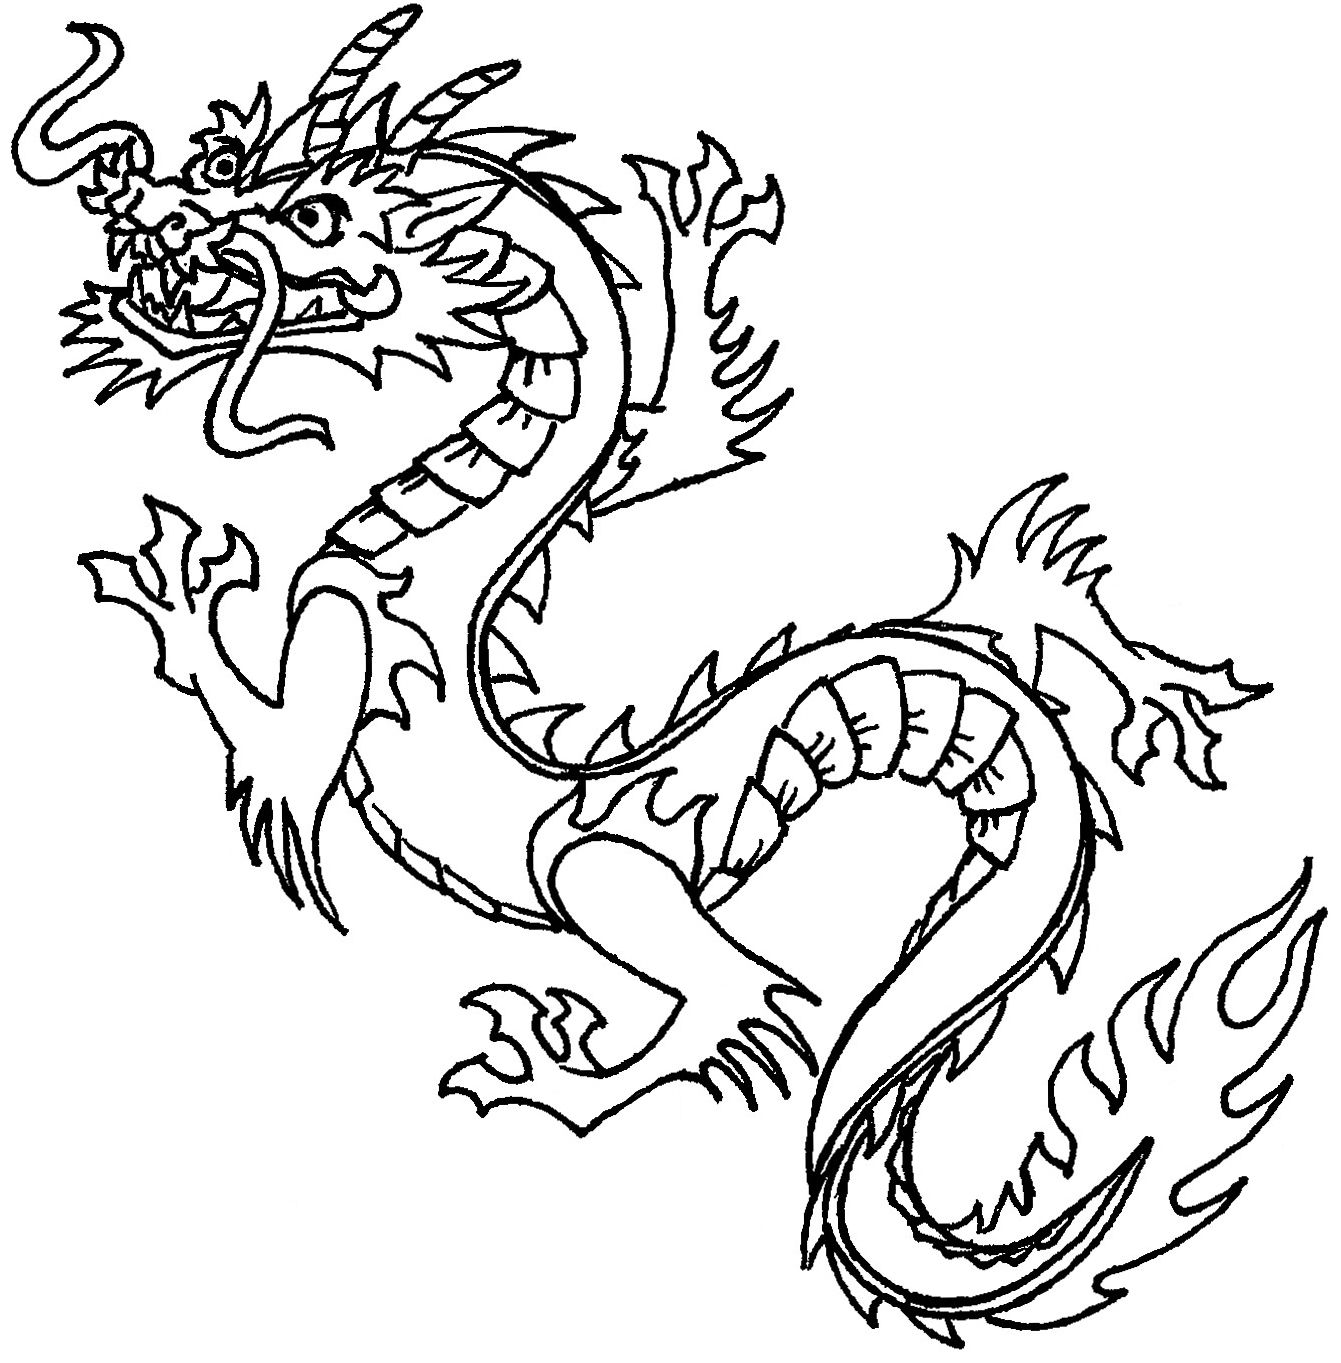 Chinese dragon tail clipart clipart royalty free library Chinese New Year Dragon Clipart Black And White - clipartsgram.com ... clipart royalty free library